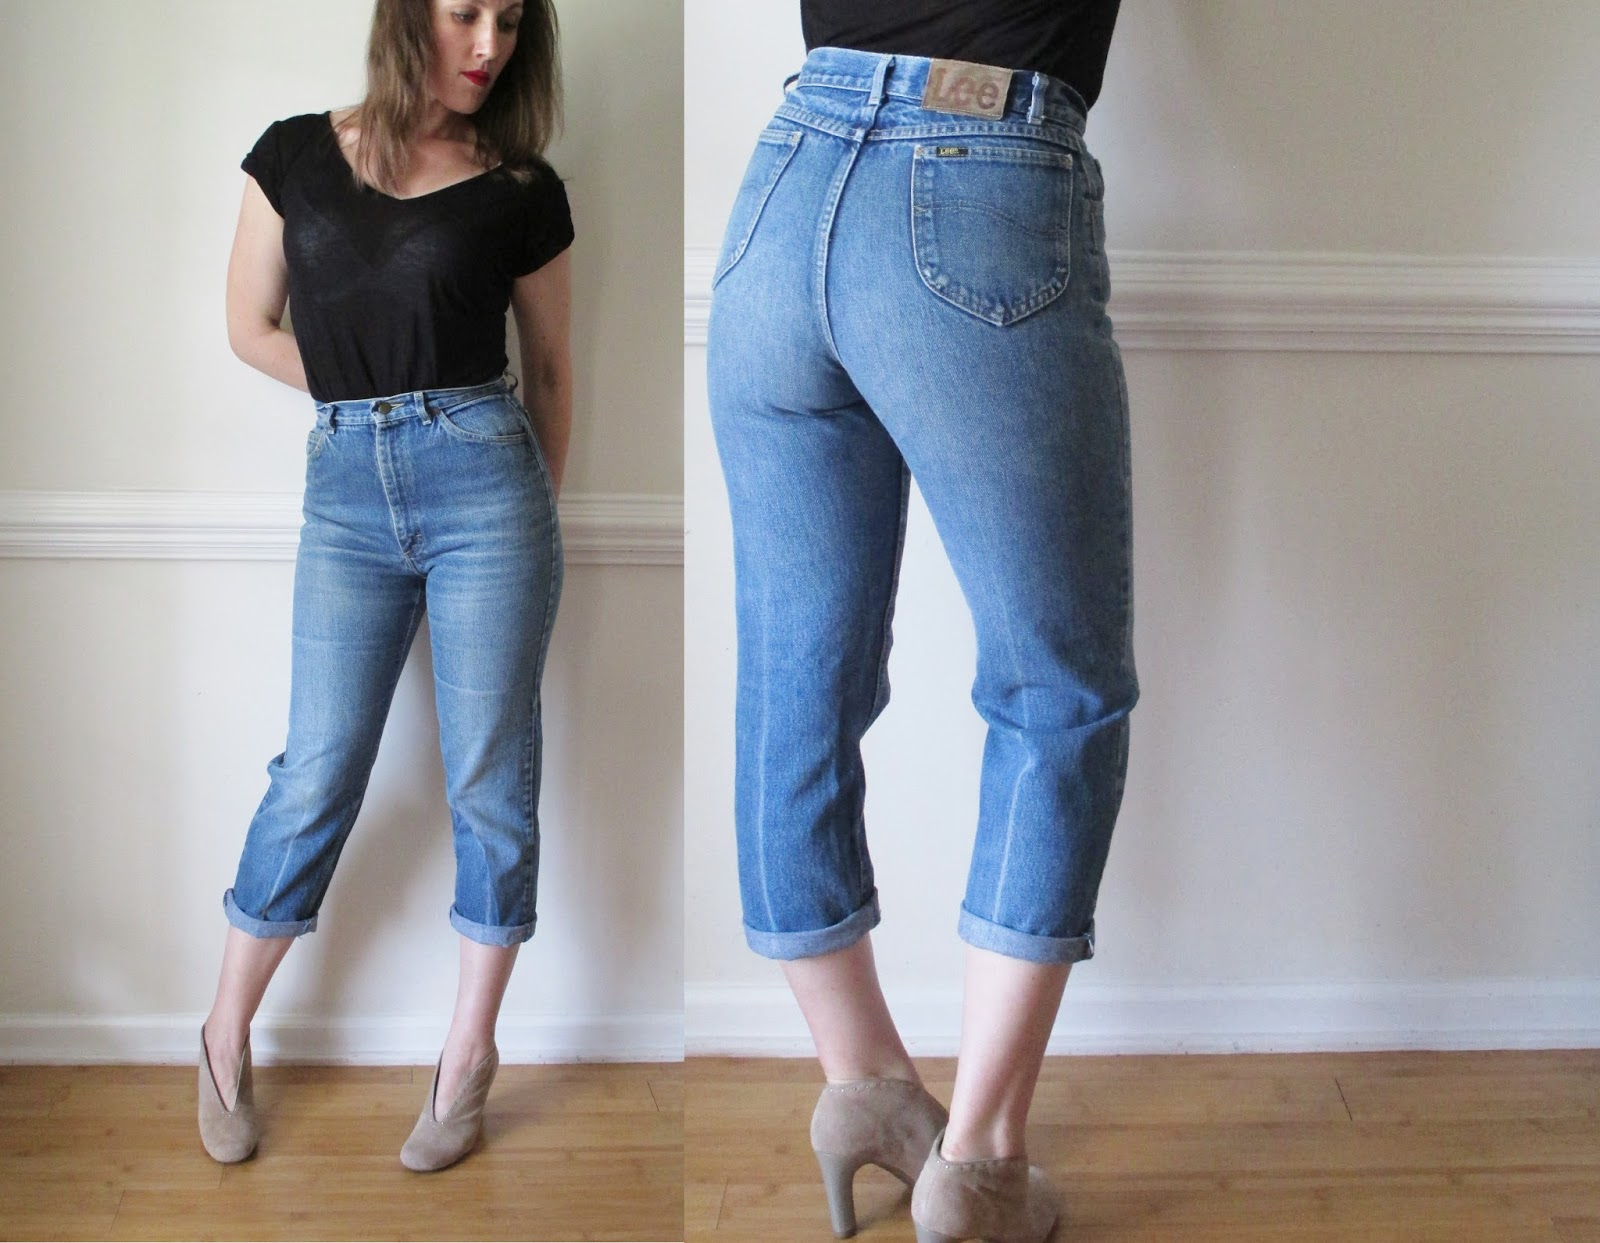 https://www.etsy.com/listing/208060843/80s-90s-high-waist-jeans-1980s-1990s?ref=shop_home_active_4